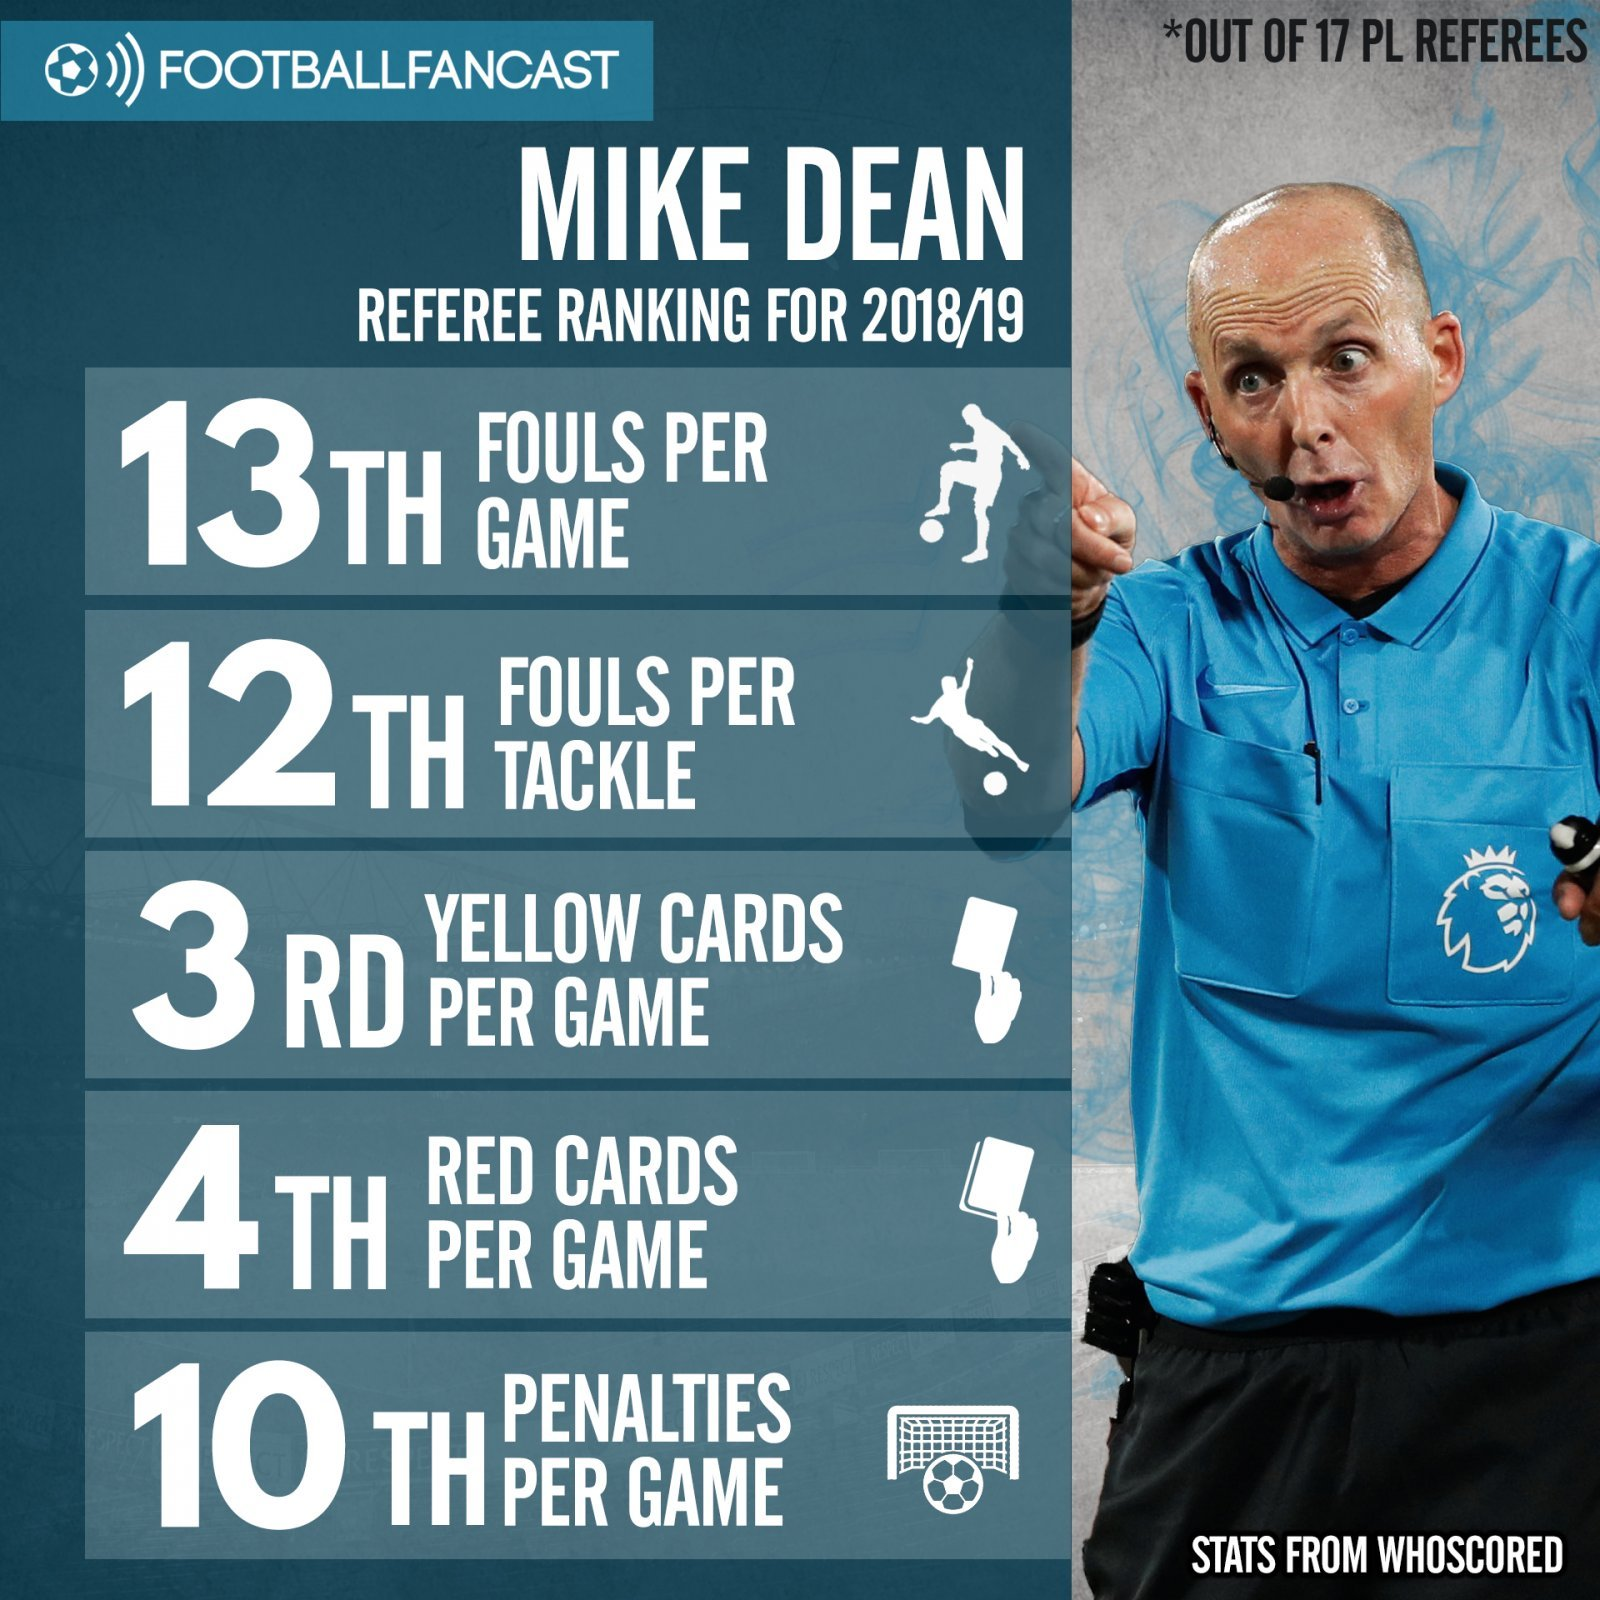 Mike Dean - Referee Stats this season